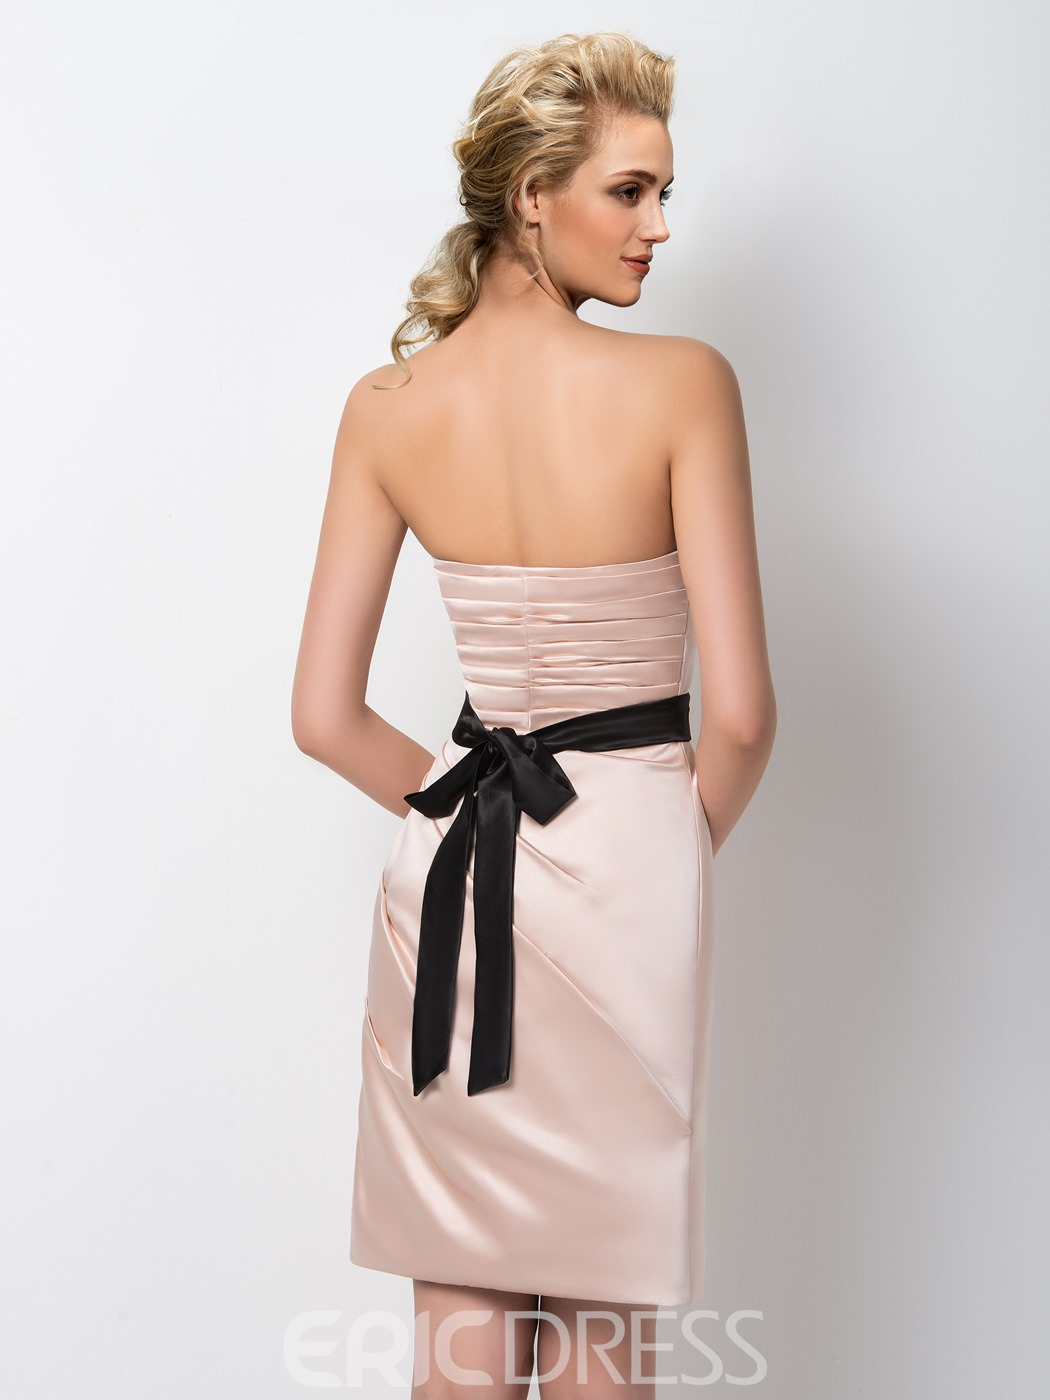 Ericdress Chic Sweetheart Sheath/Column Bridesmaid Dress